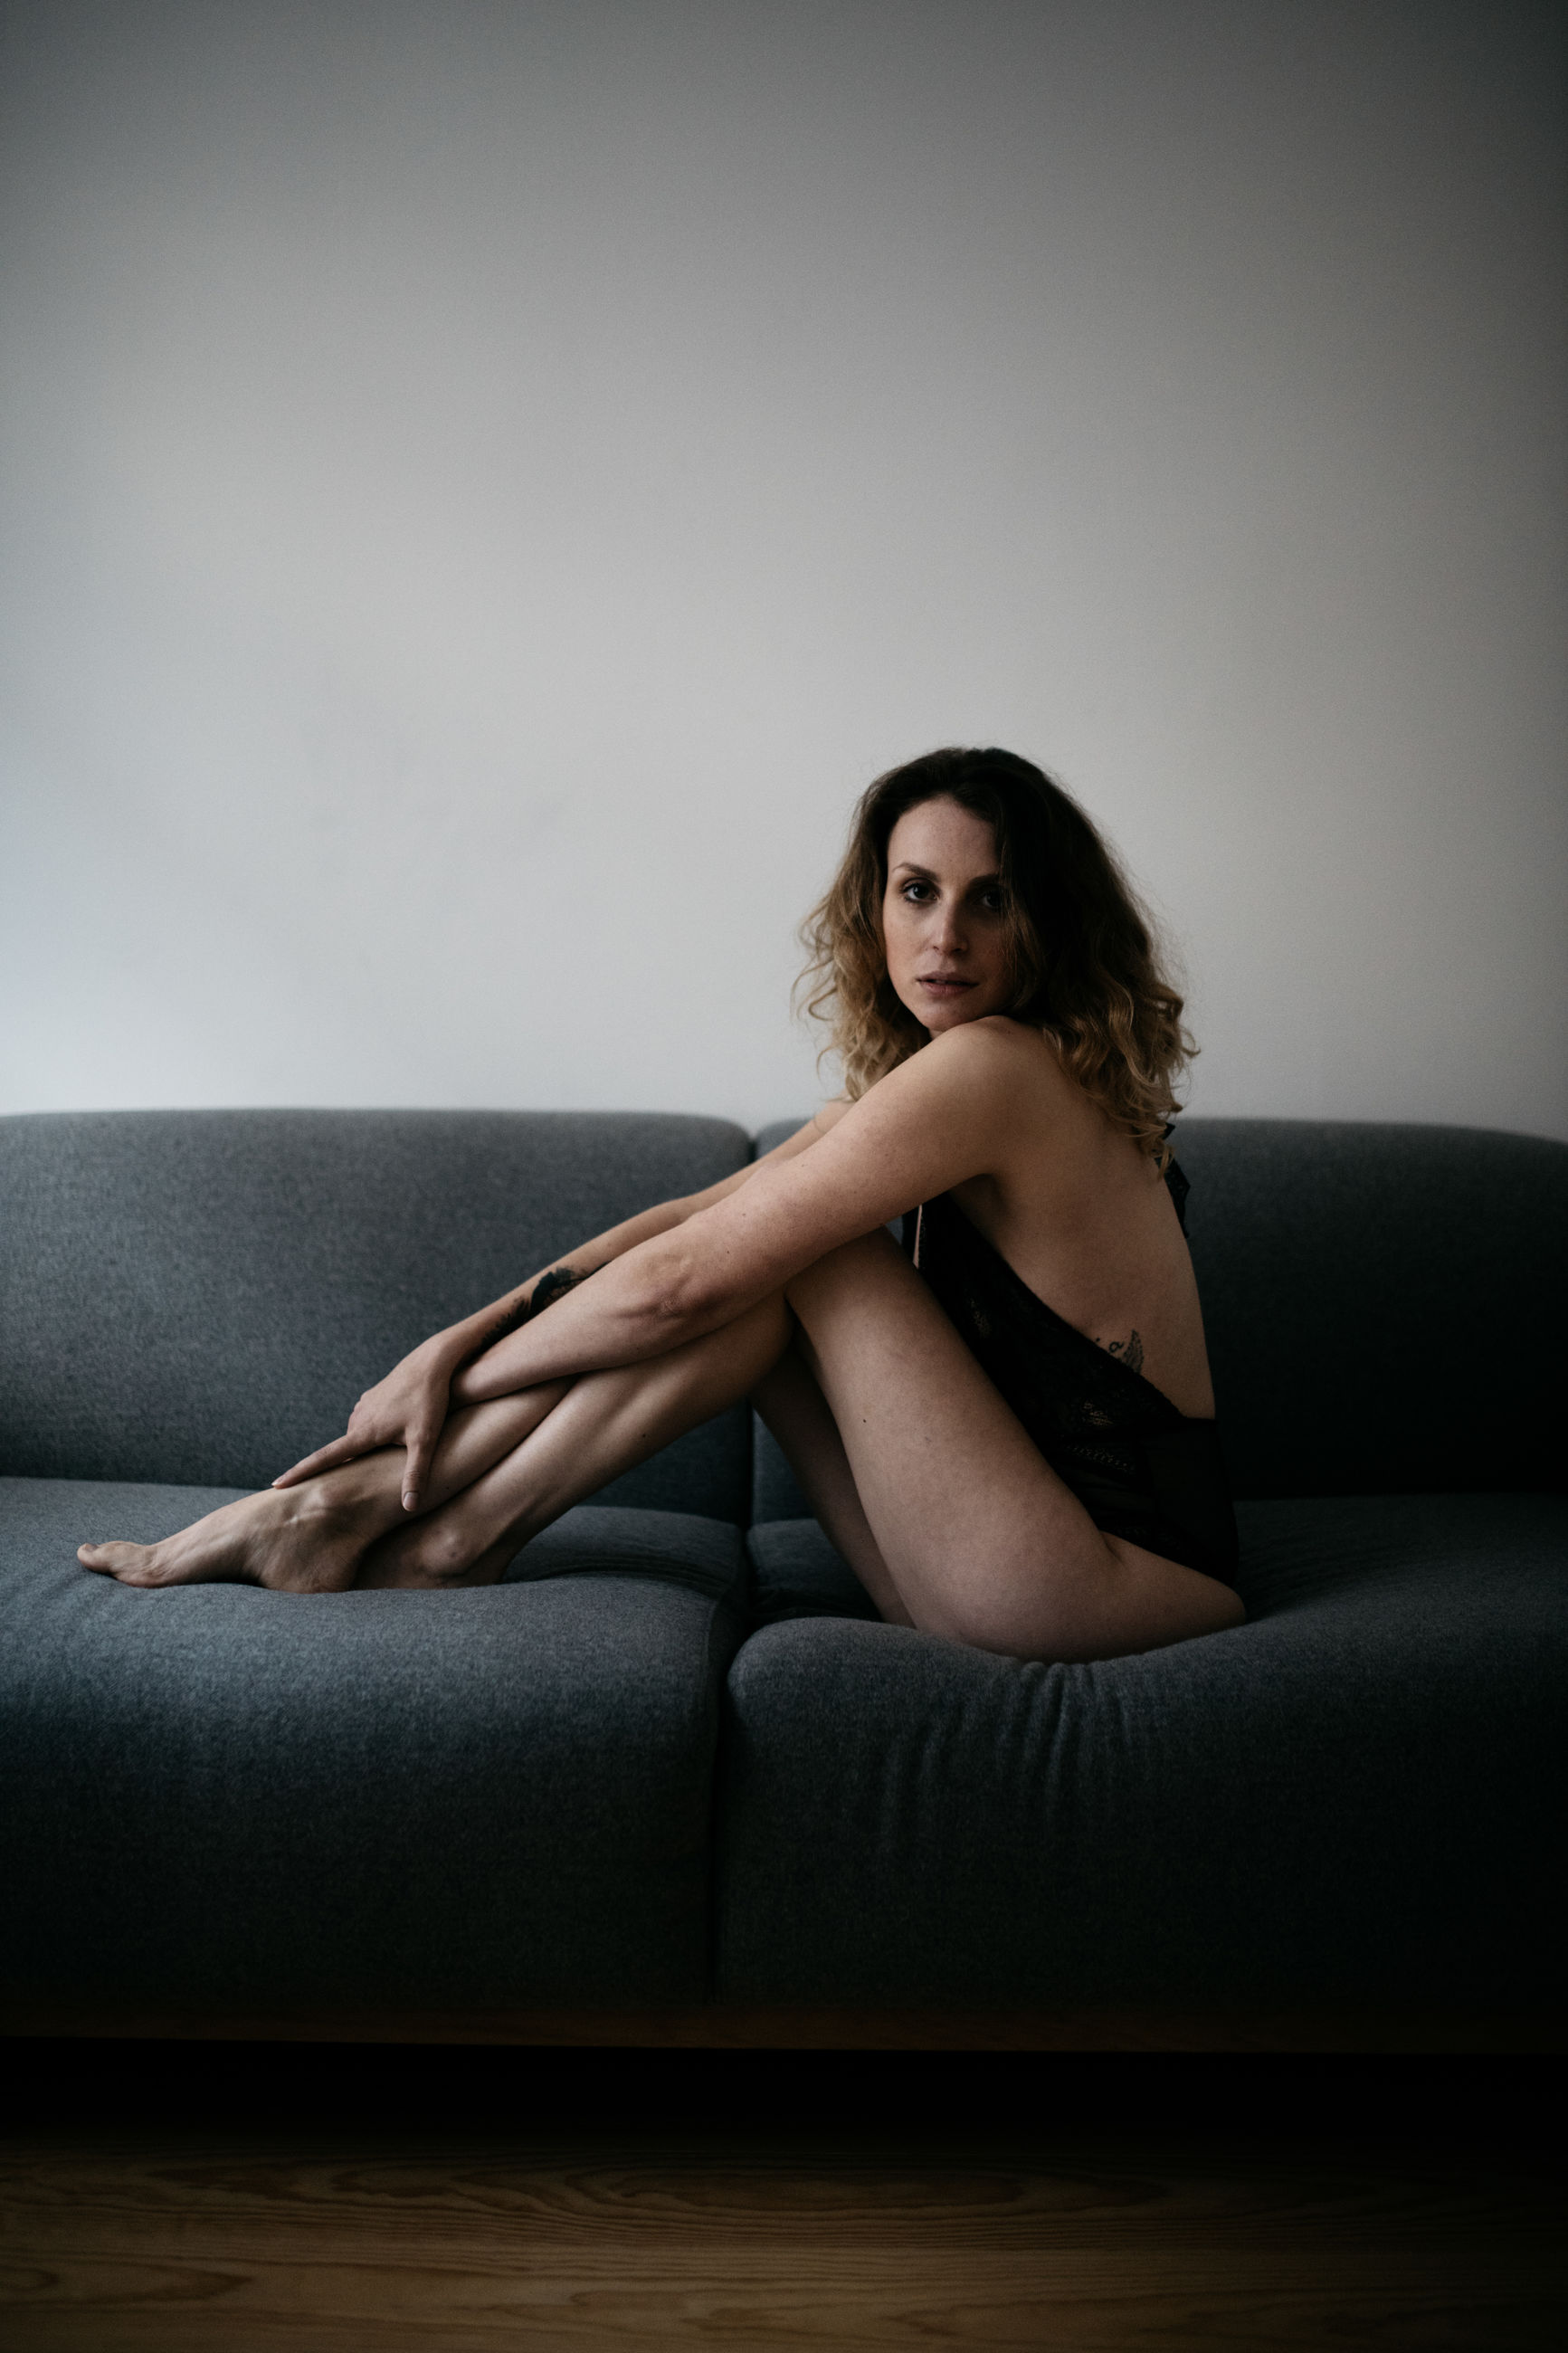 sitting, sofa, one person, indoors, looking at camera, portrait, furniture, lifestyles, full length, hairstyle, beauty, young adult, hair, beautiful woman, long hair, leisure activity, women, real people, contemplation